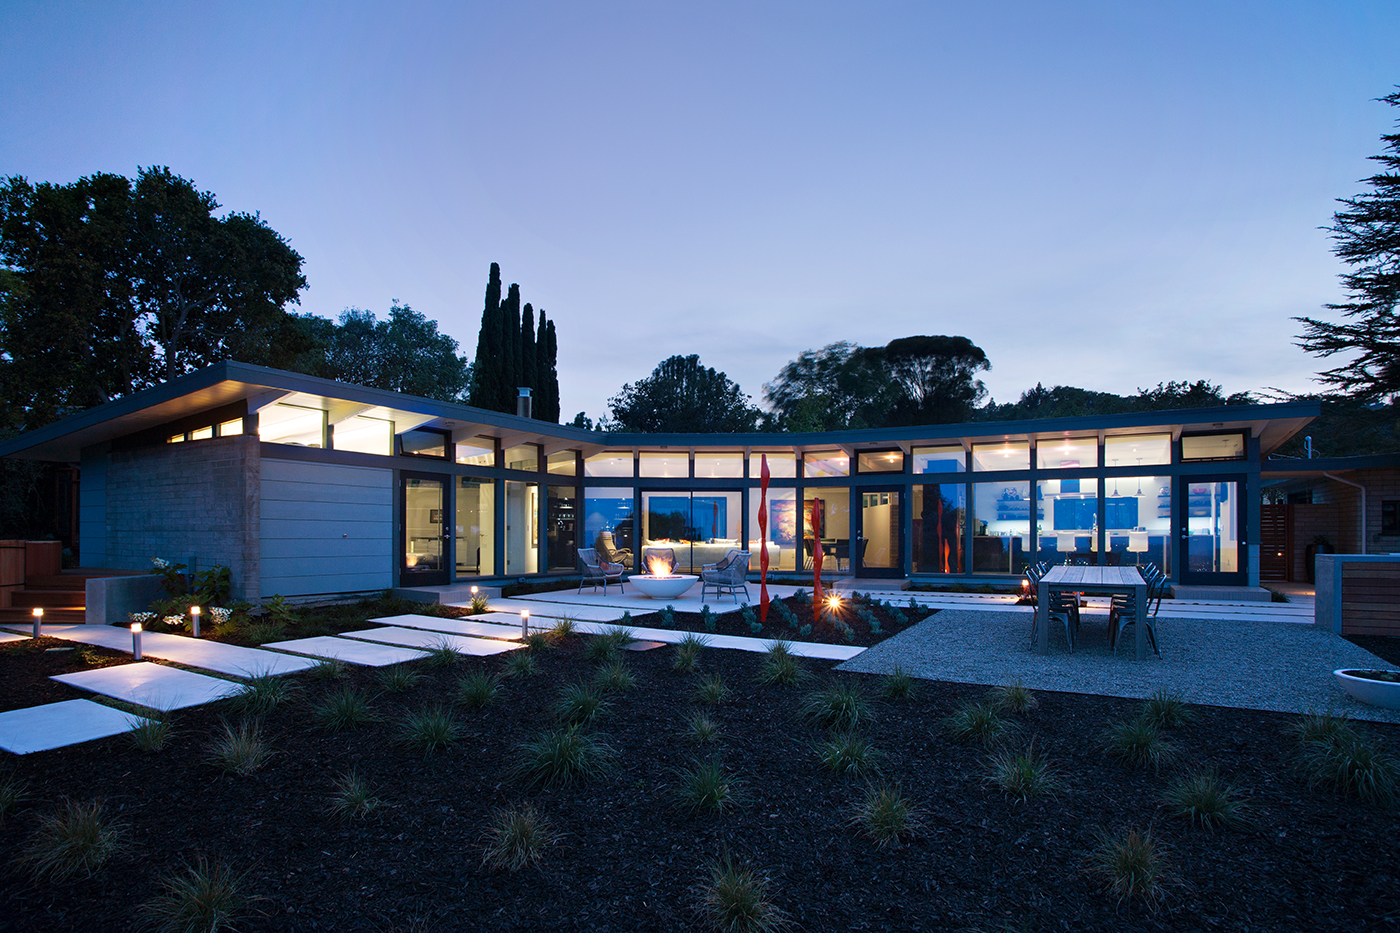 Mid Century Modern Remodel san carlos mid-century modern remodel | residential architect